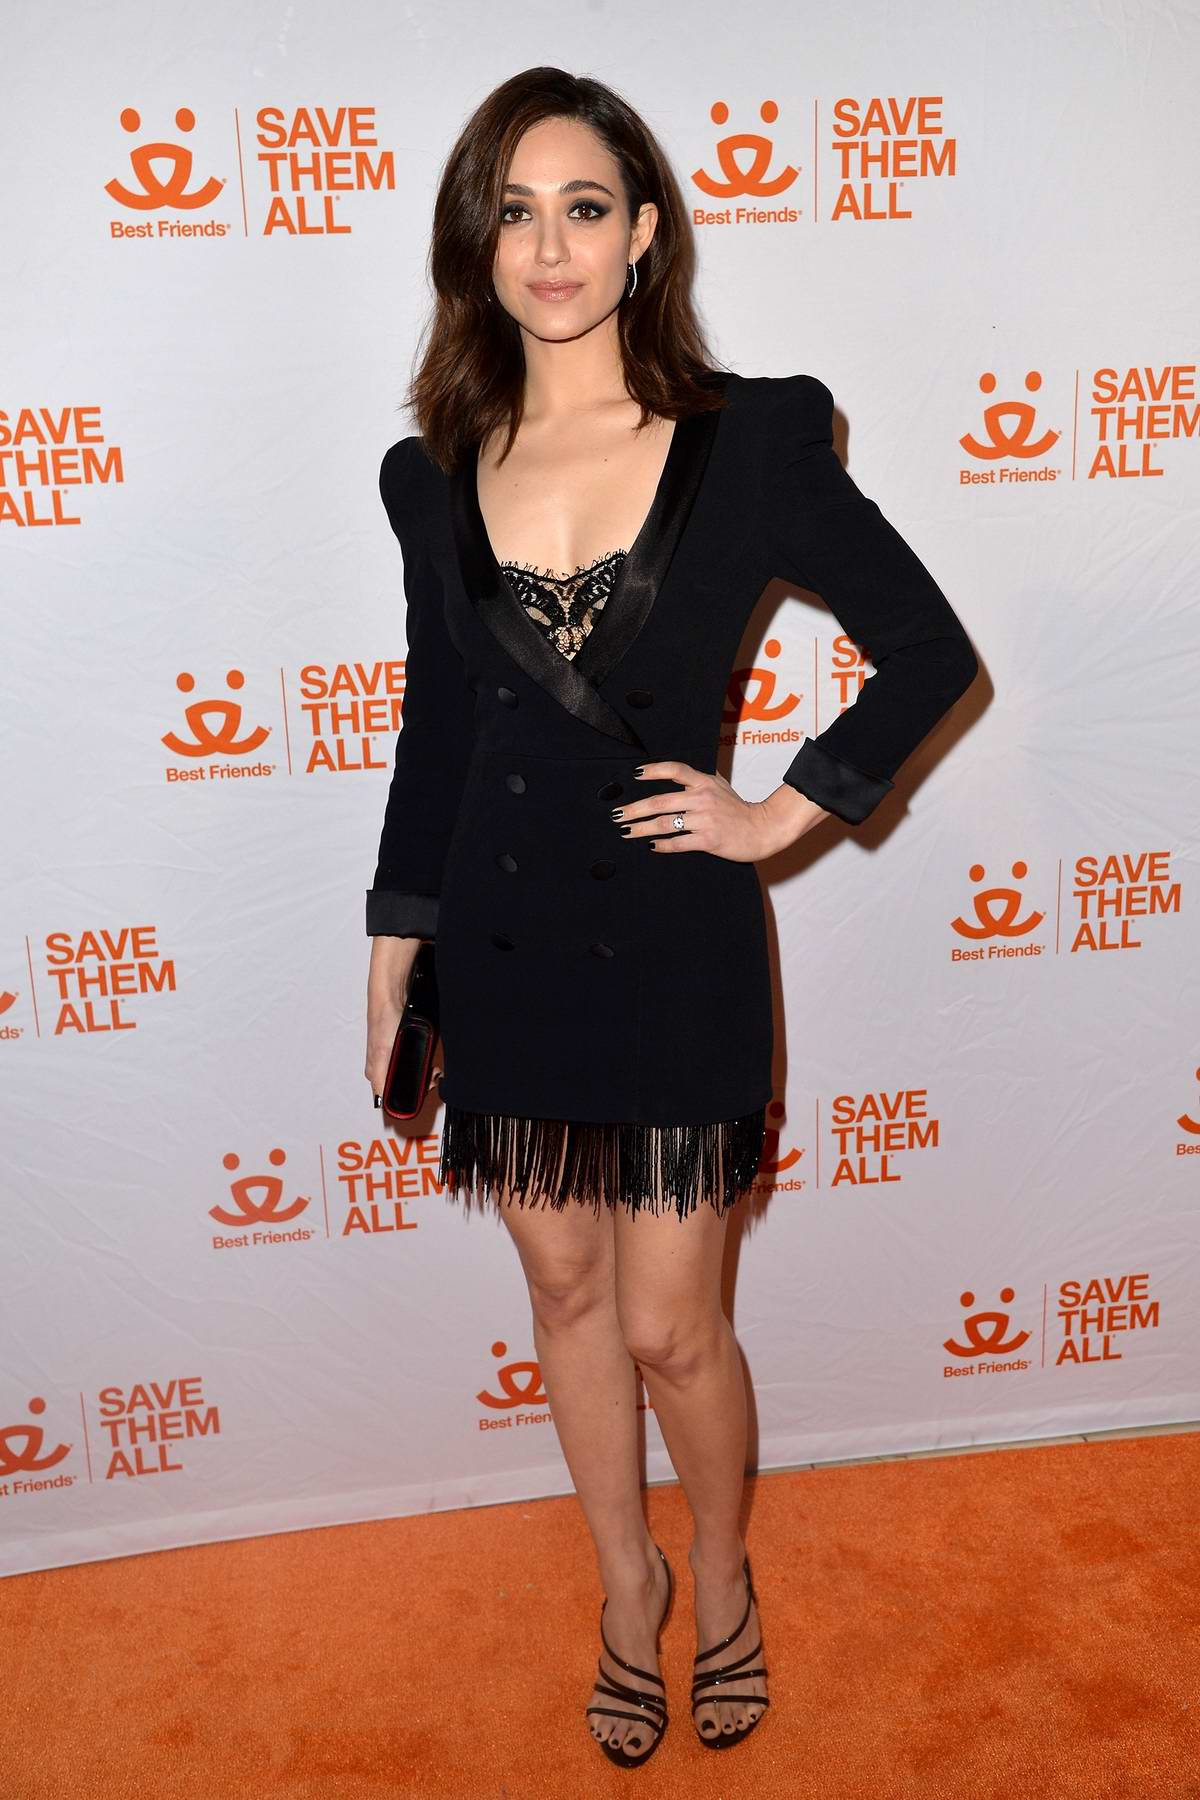 Emmy Rossum attends the Animal Society Best Friends Benefit in New York City